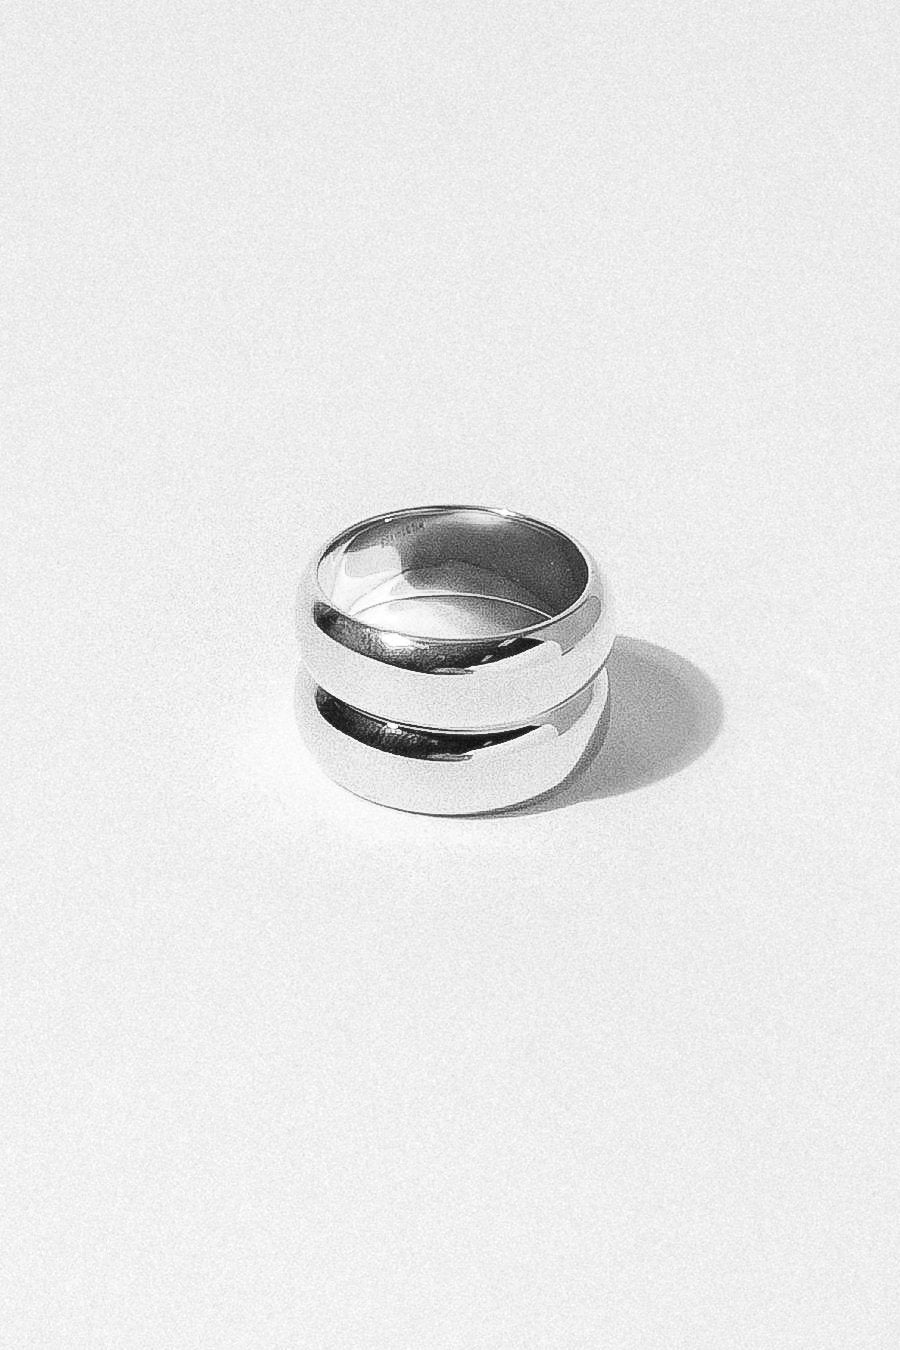 Wildthings Collectables Jewelry US 7 / Silver Double Trouble Ring Silver